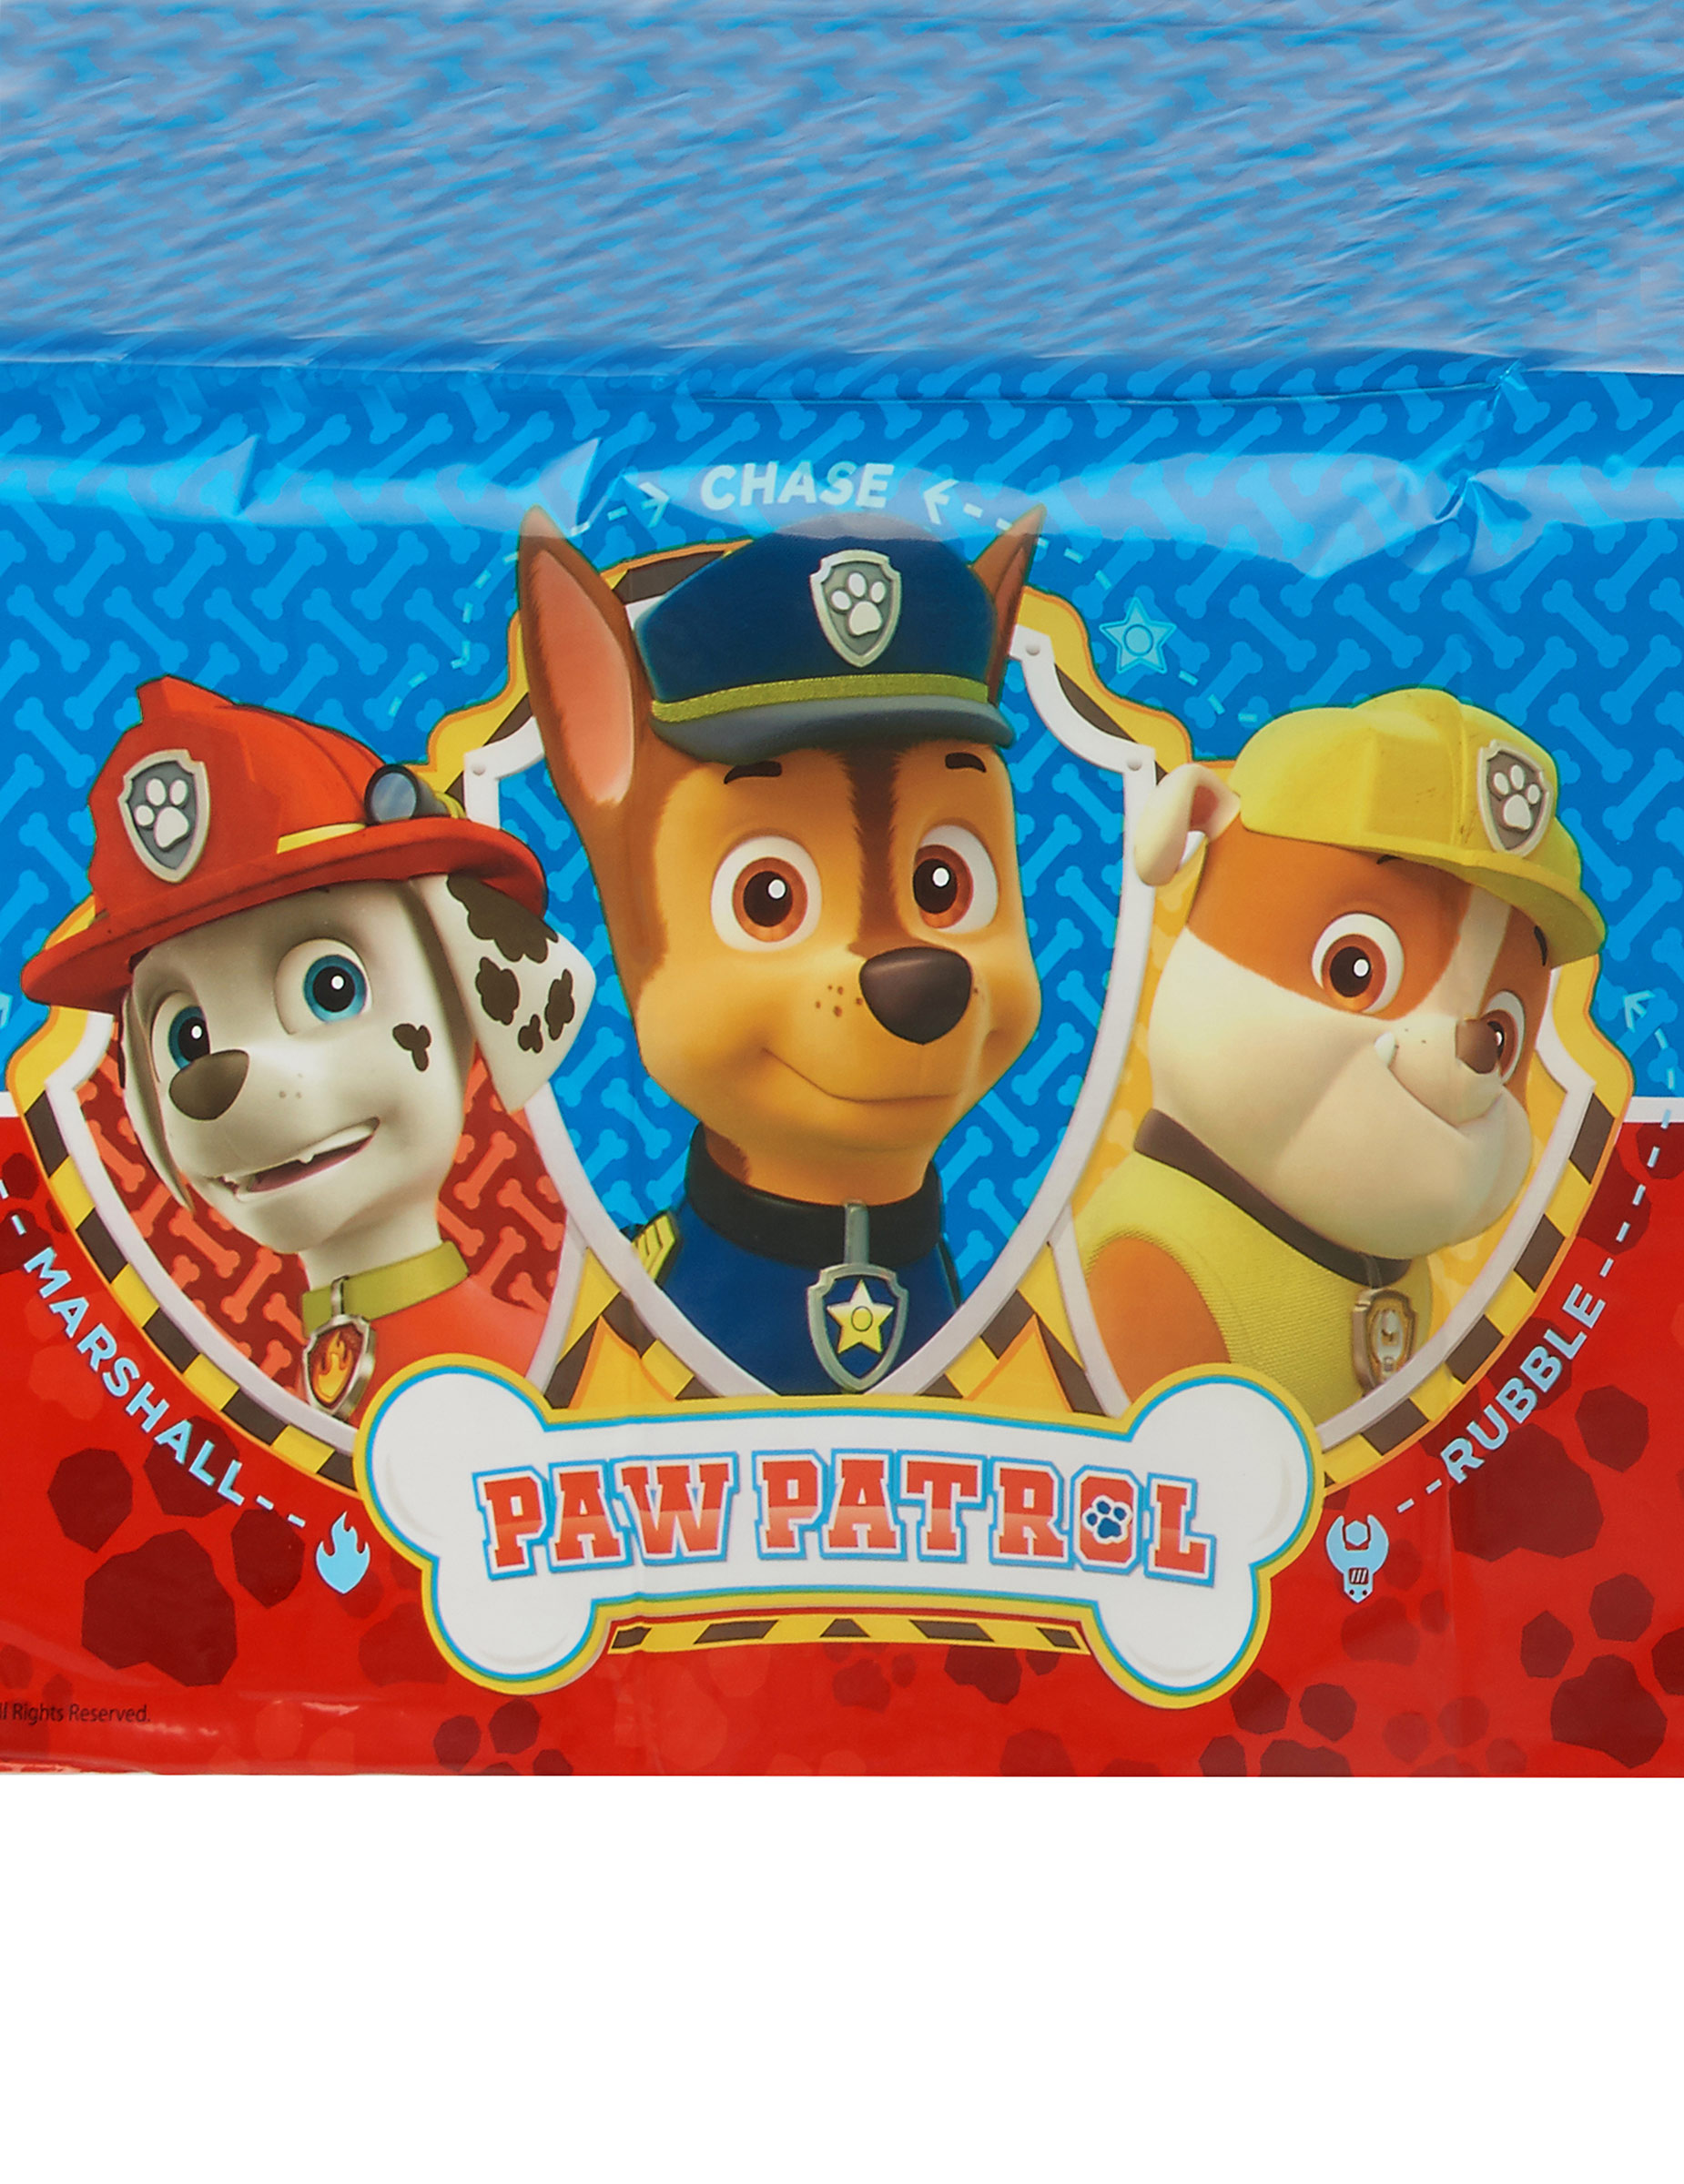 paw patrol tischdecke hundestaffel 120 x 180 cm bunt partydeko und g nstige faschingskost me. Black Bedroom Furniture Sets. Home Design Ideas